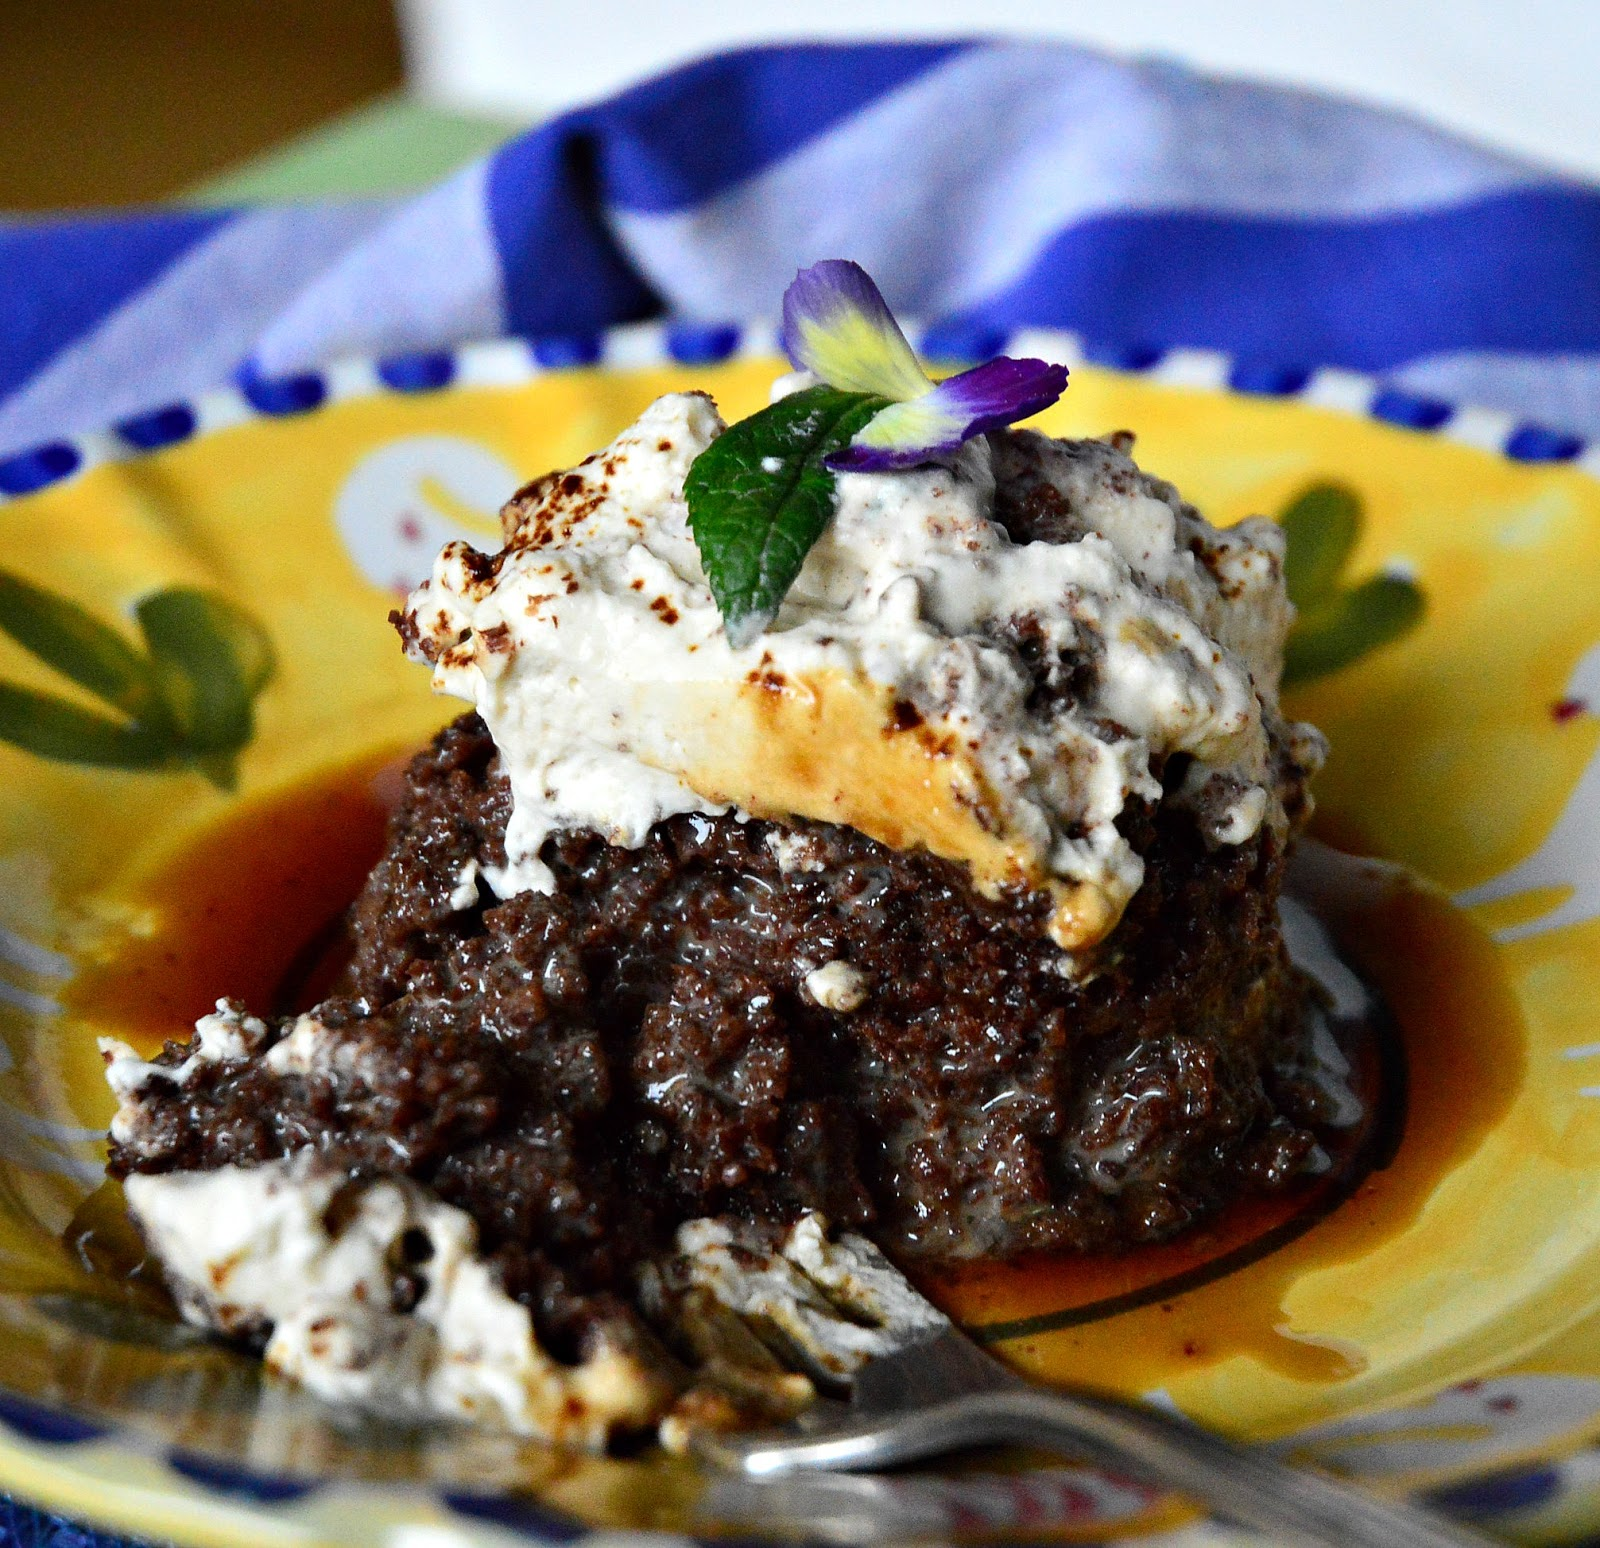 This is How I Cook: Chocolate Tres Leches Cake